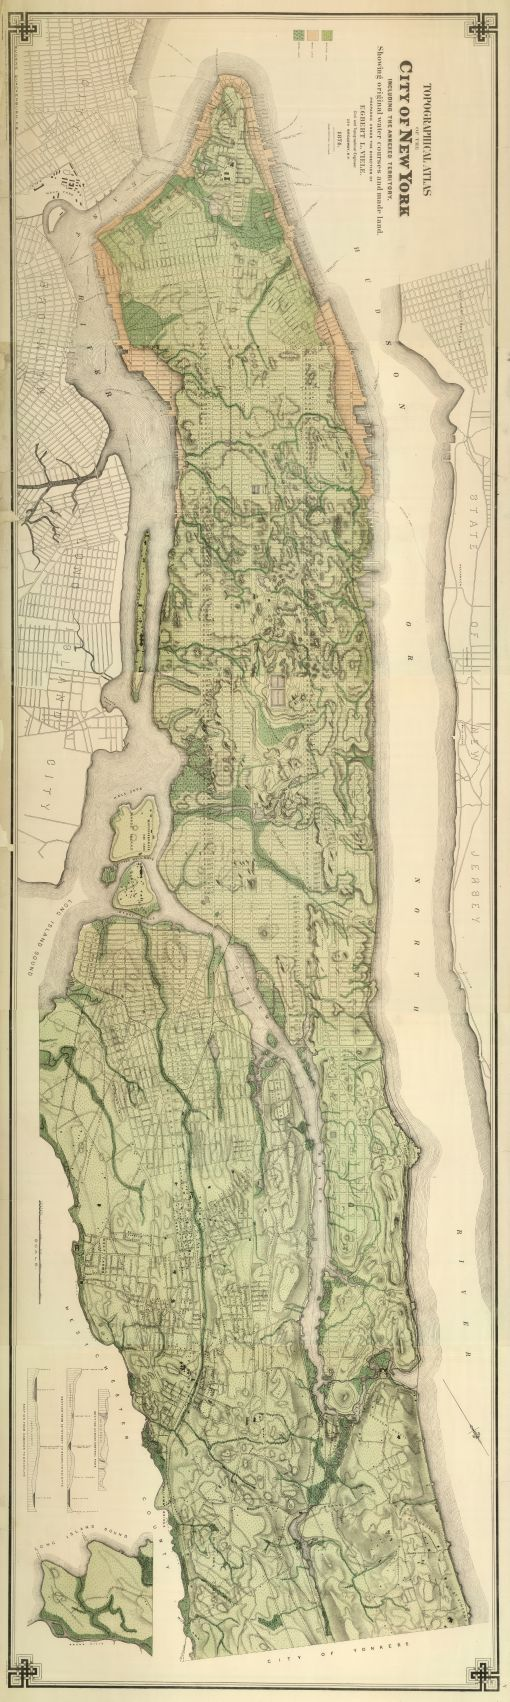 Topographical Atlas Of The City Of New York Including The Annexed Territory. Showing original water courses and made land.